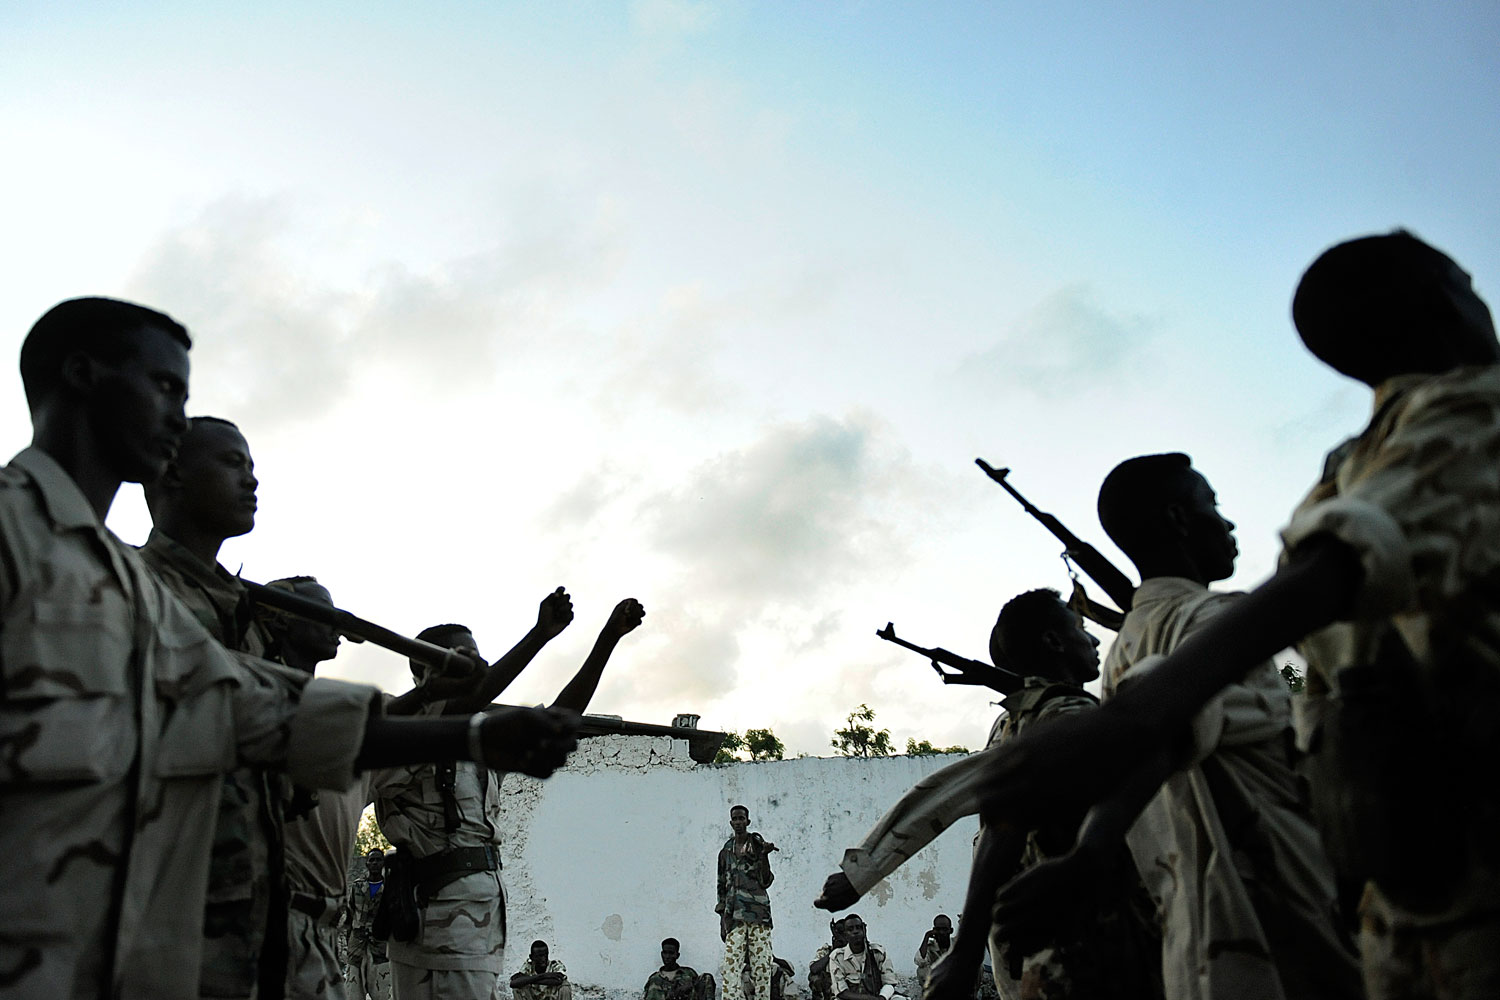 October 4, 2011. Soldiers of the Transitional Federal Government TFG, army in Somalia performing drills at a base near a frontline.